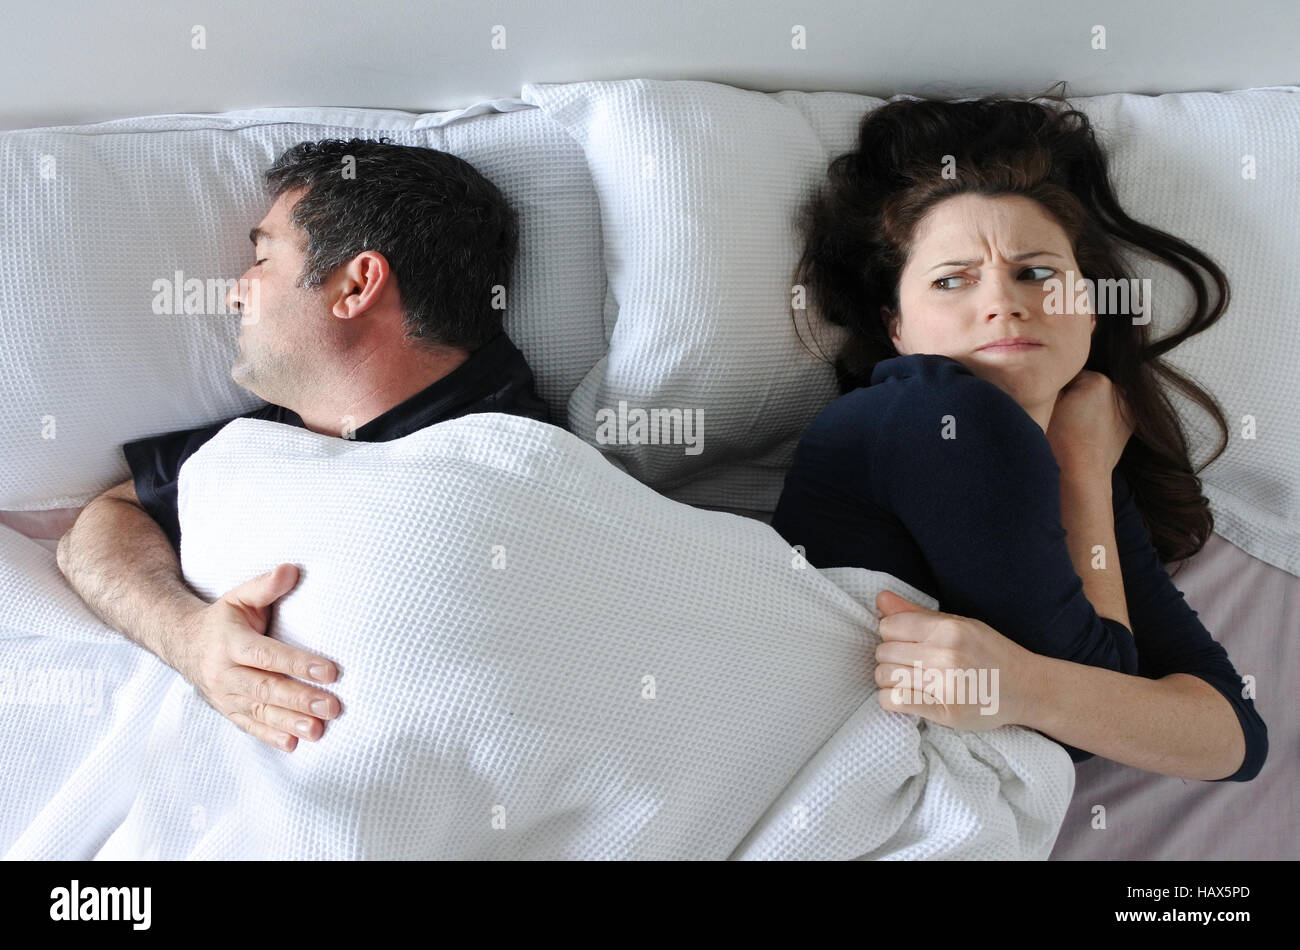 Man (age 35 -4 5) hogging the blanket from his woman in bed (Age 30-40) Couple lifestyle. Real people. copy space - Stock Image